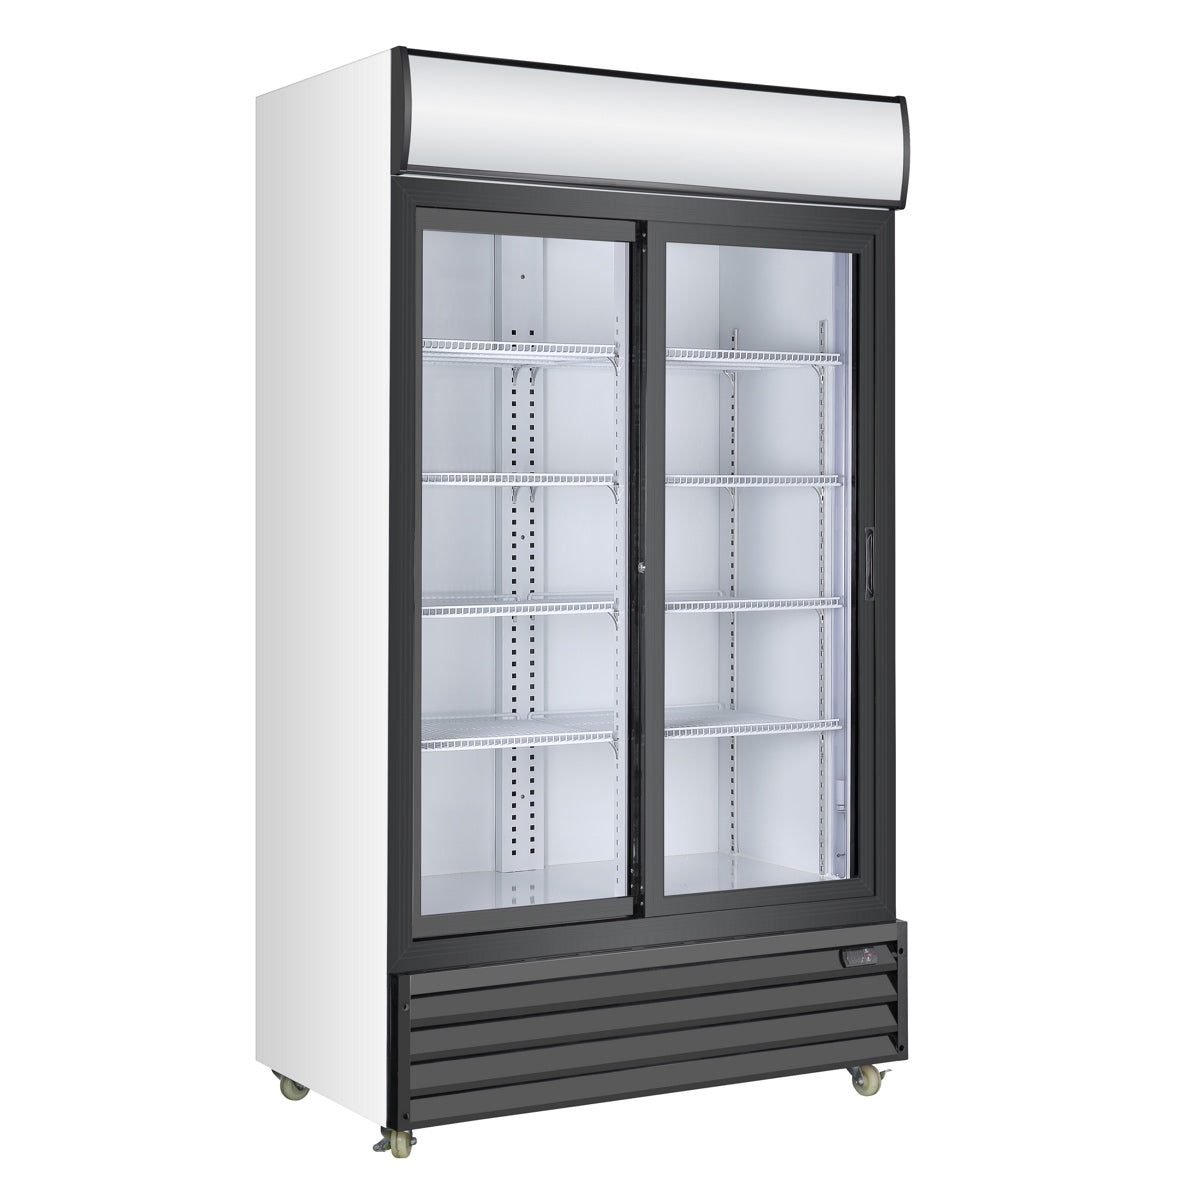 Double Sliding Door Display Beverage Cooler Refrigerator